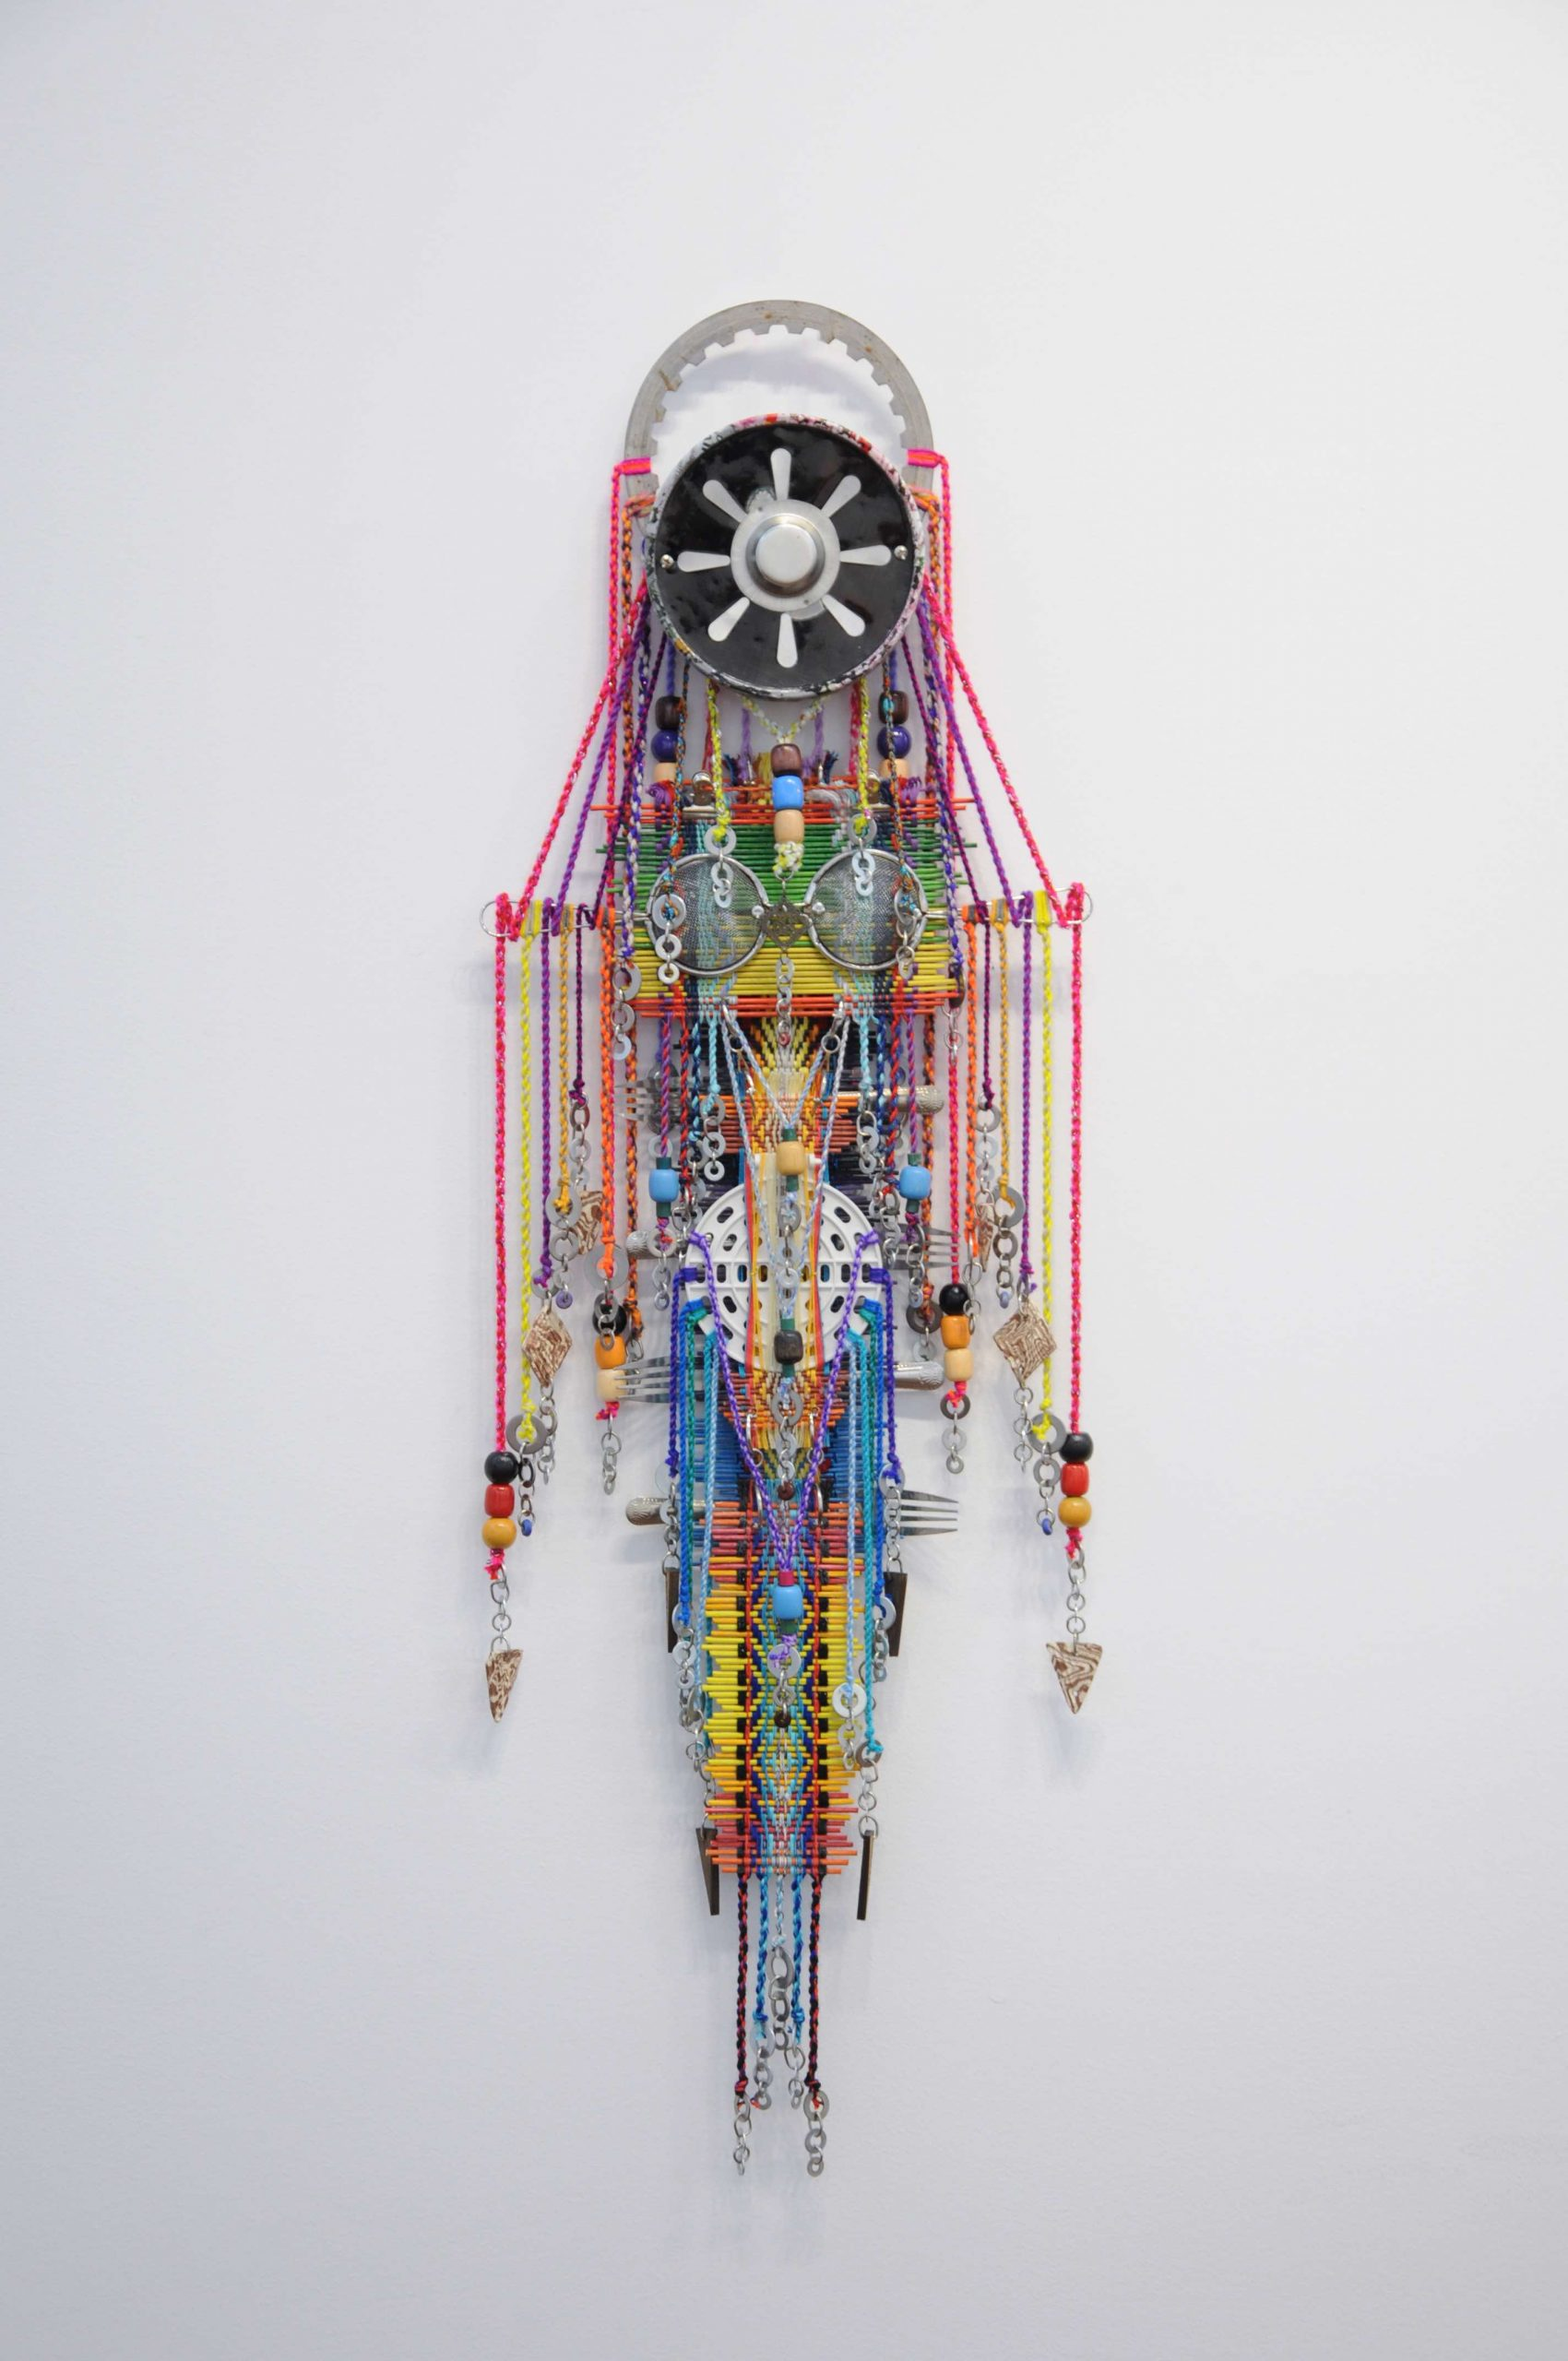 2016 Pattern drafted weaving structures, rattan sticks, yarns, ceramic & wooden beads, wall washers, kitchen utensils 96 x 32cm - Marc Straus Gallery